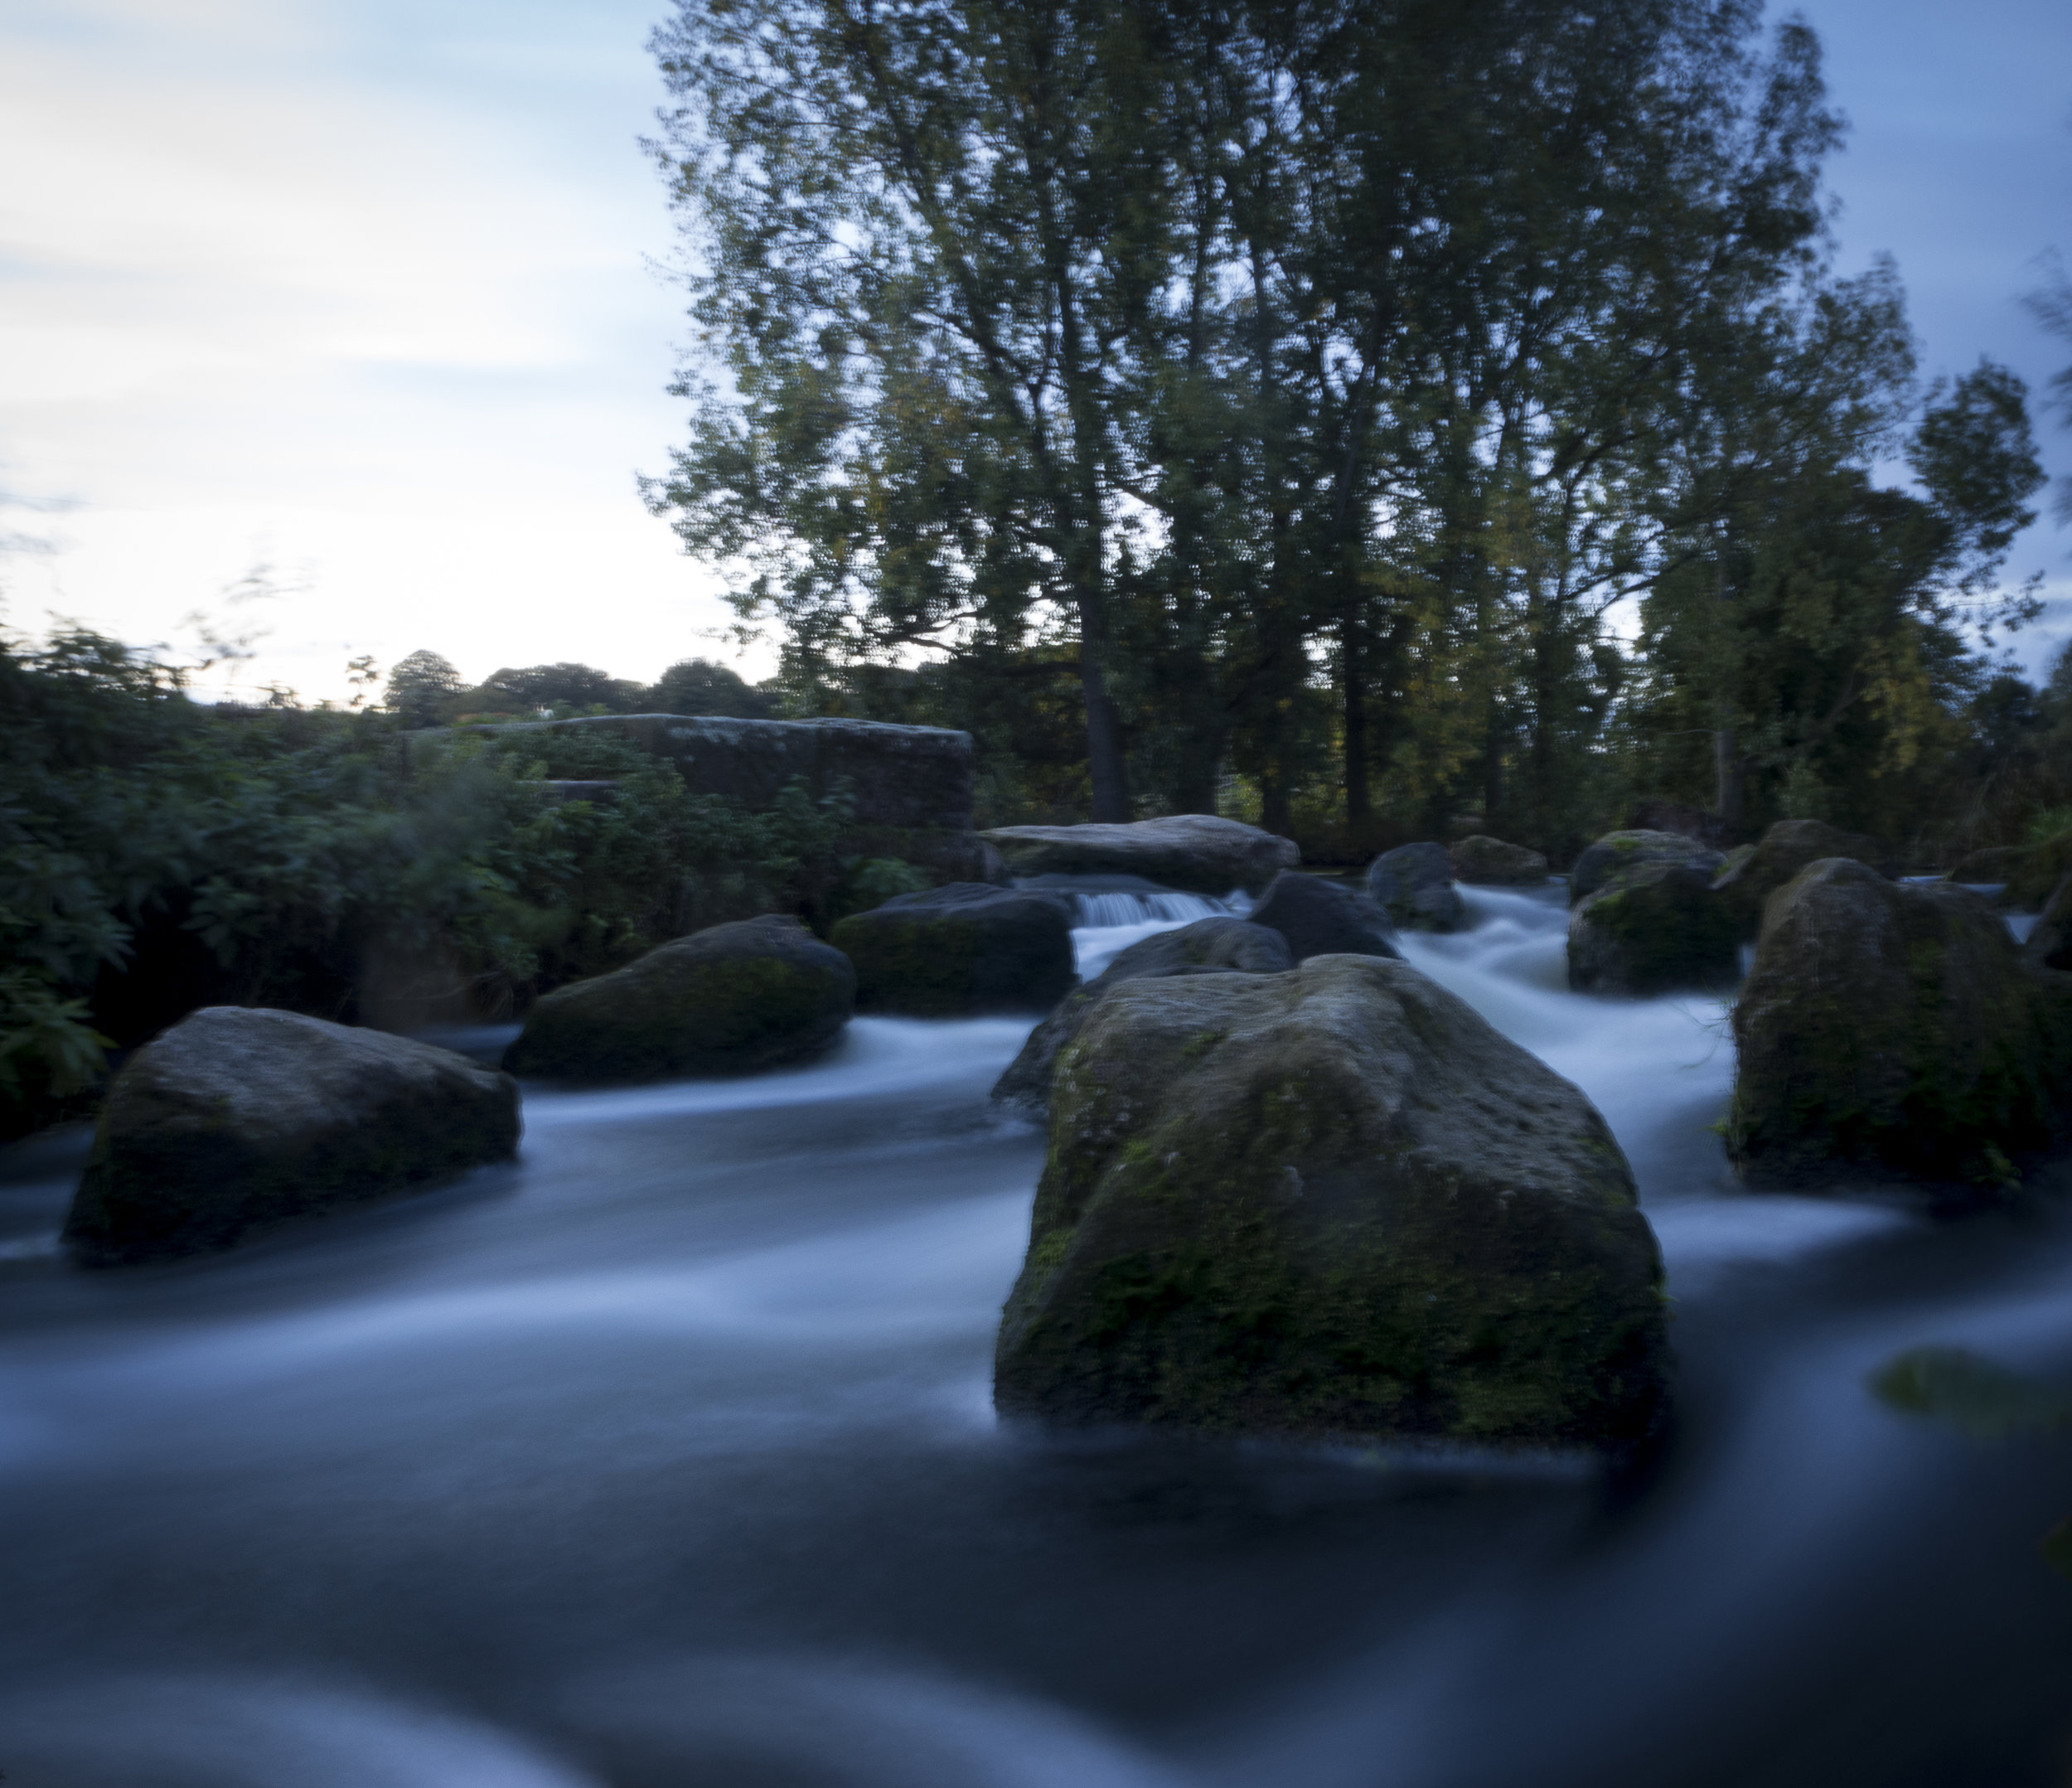 The boulder Race - Taken straight after the image above but because I was facing away from the rising sun manged to get the exposure to 13 sec. at f20 but the trees really spoil the shot, it could have been a more interesting shot otherwise.